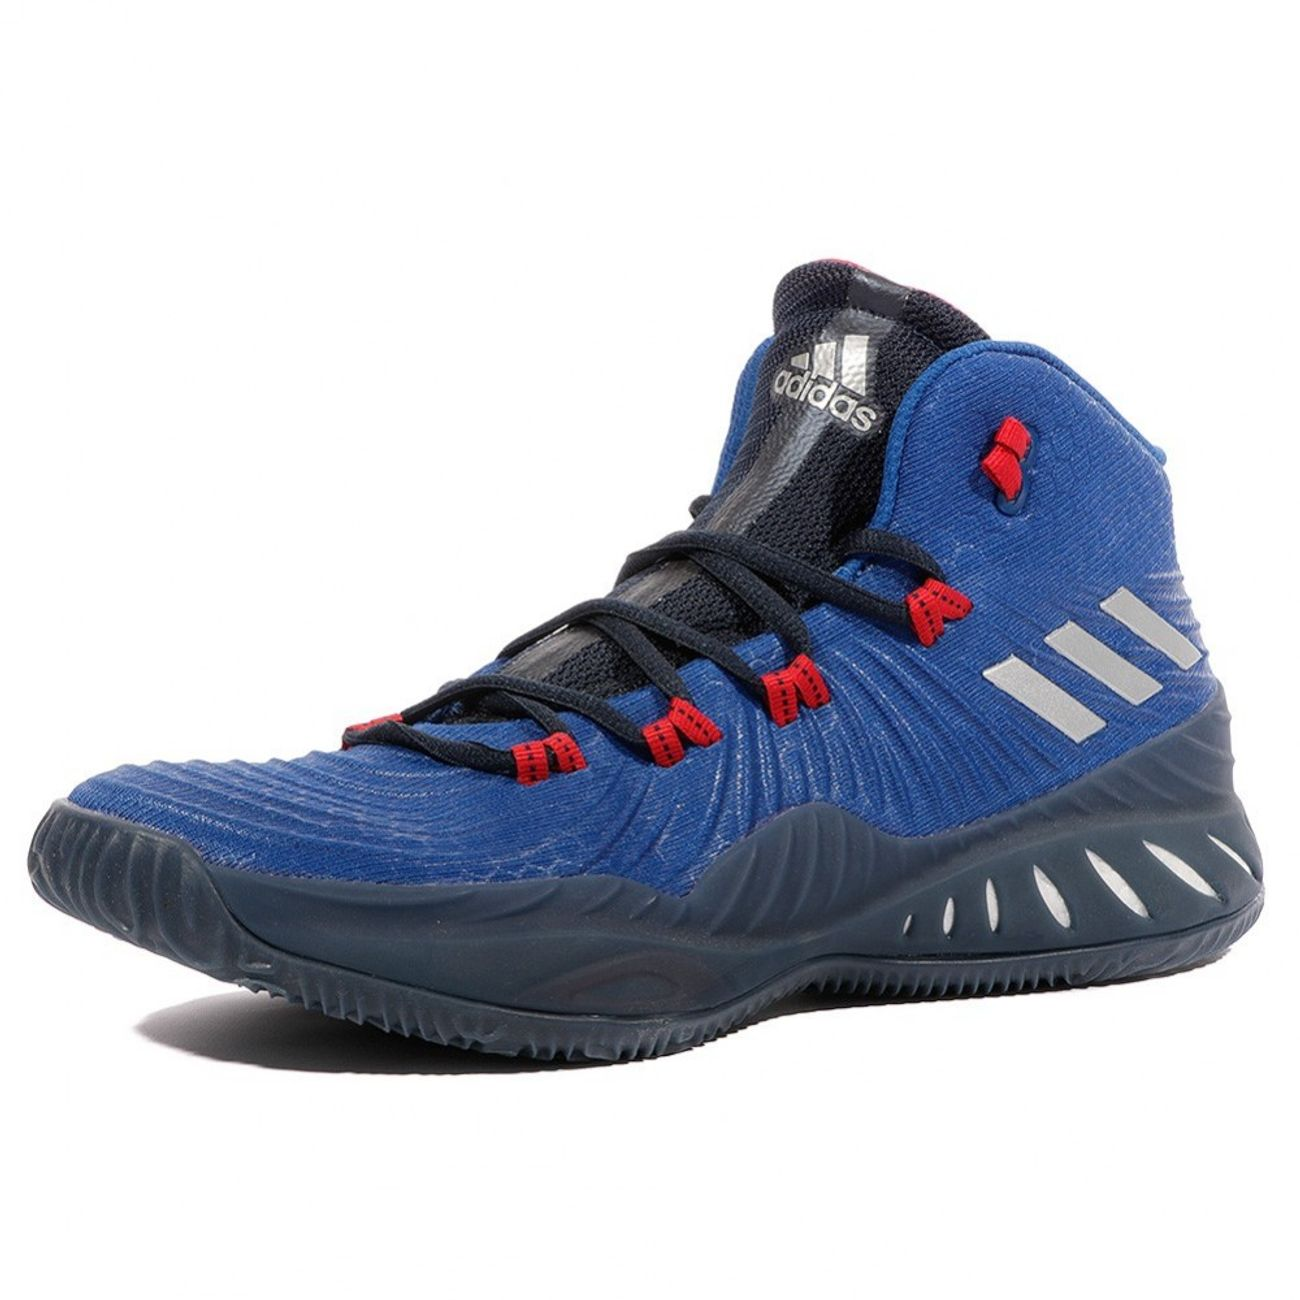 Mode- Lifestyle homme ADIDAS Crazy Explosive 2017 Homme Chaussures Basketball Bleu Adidas